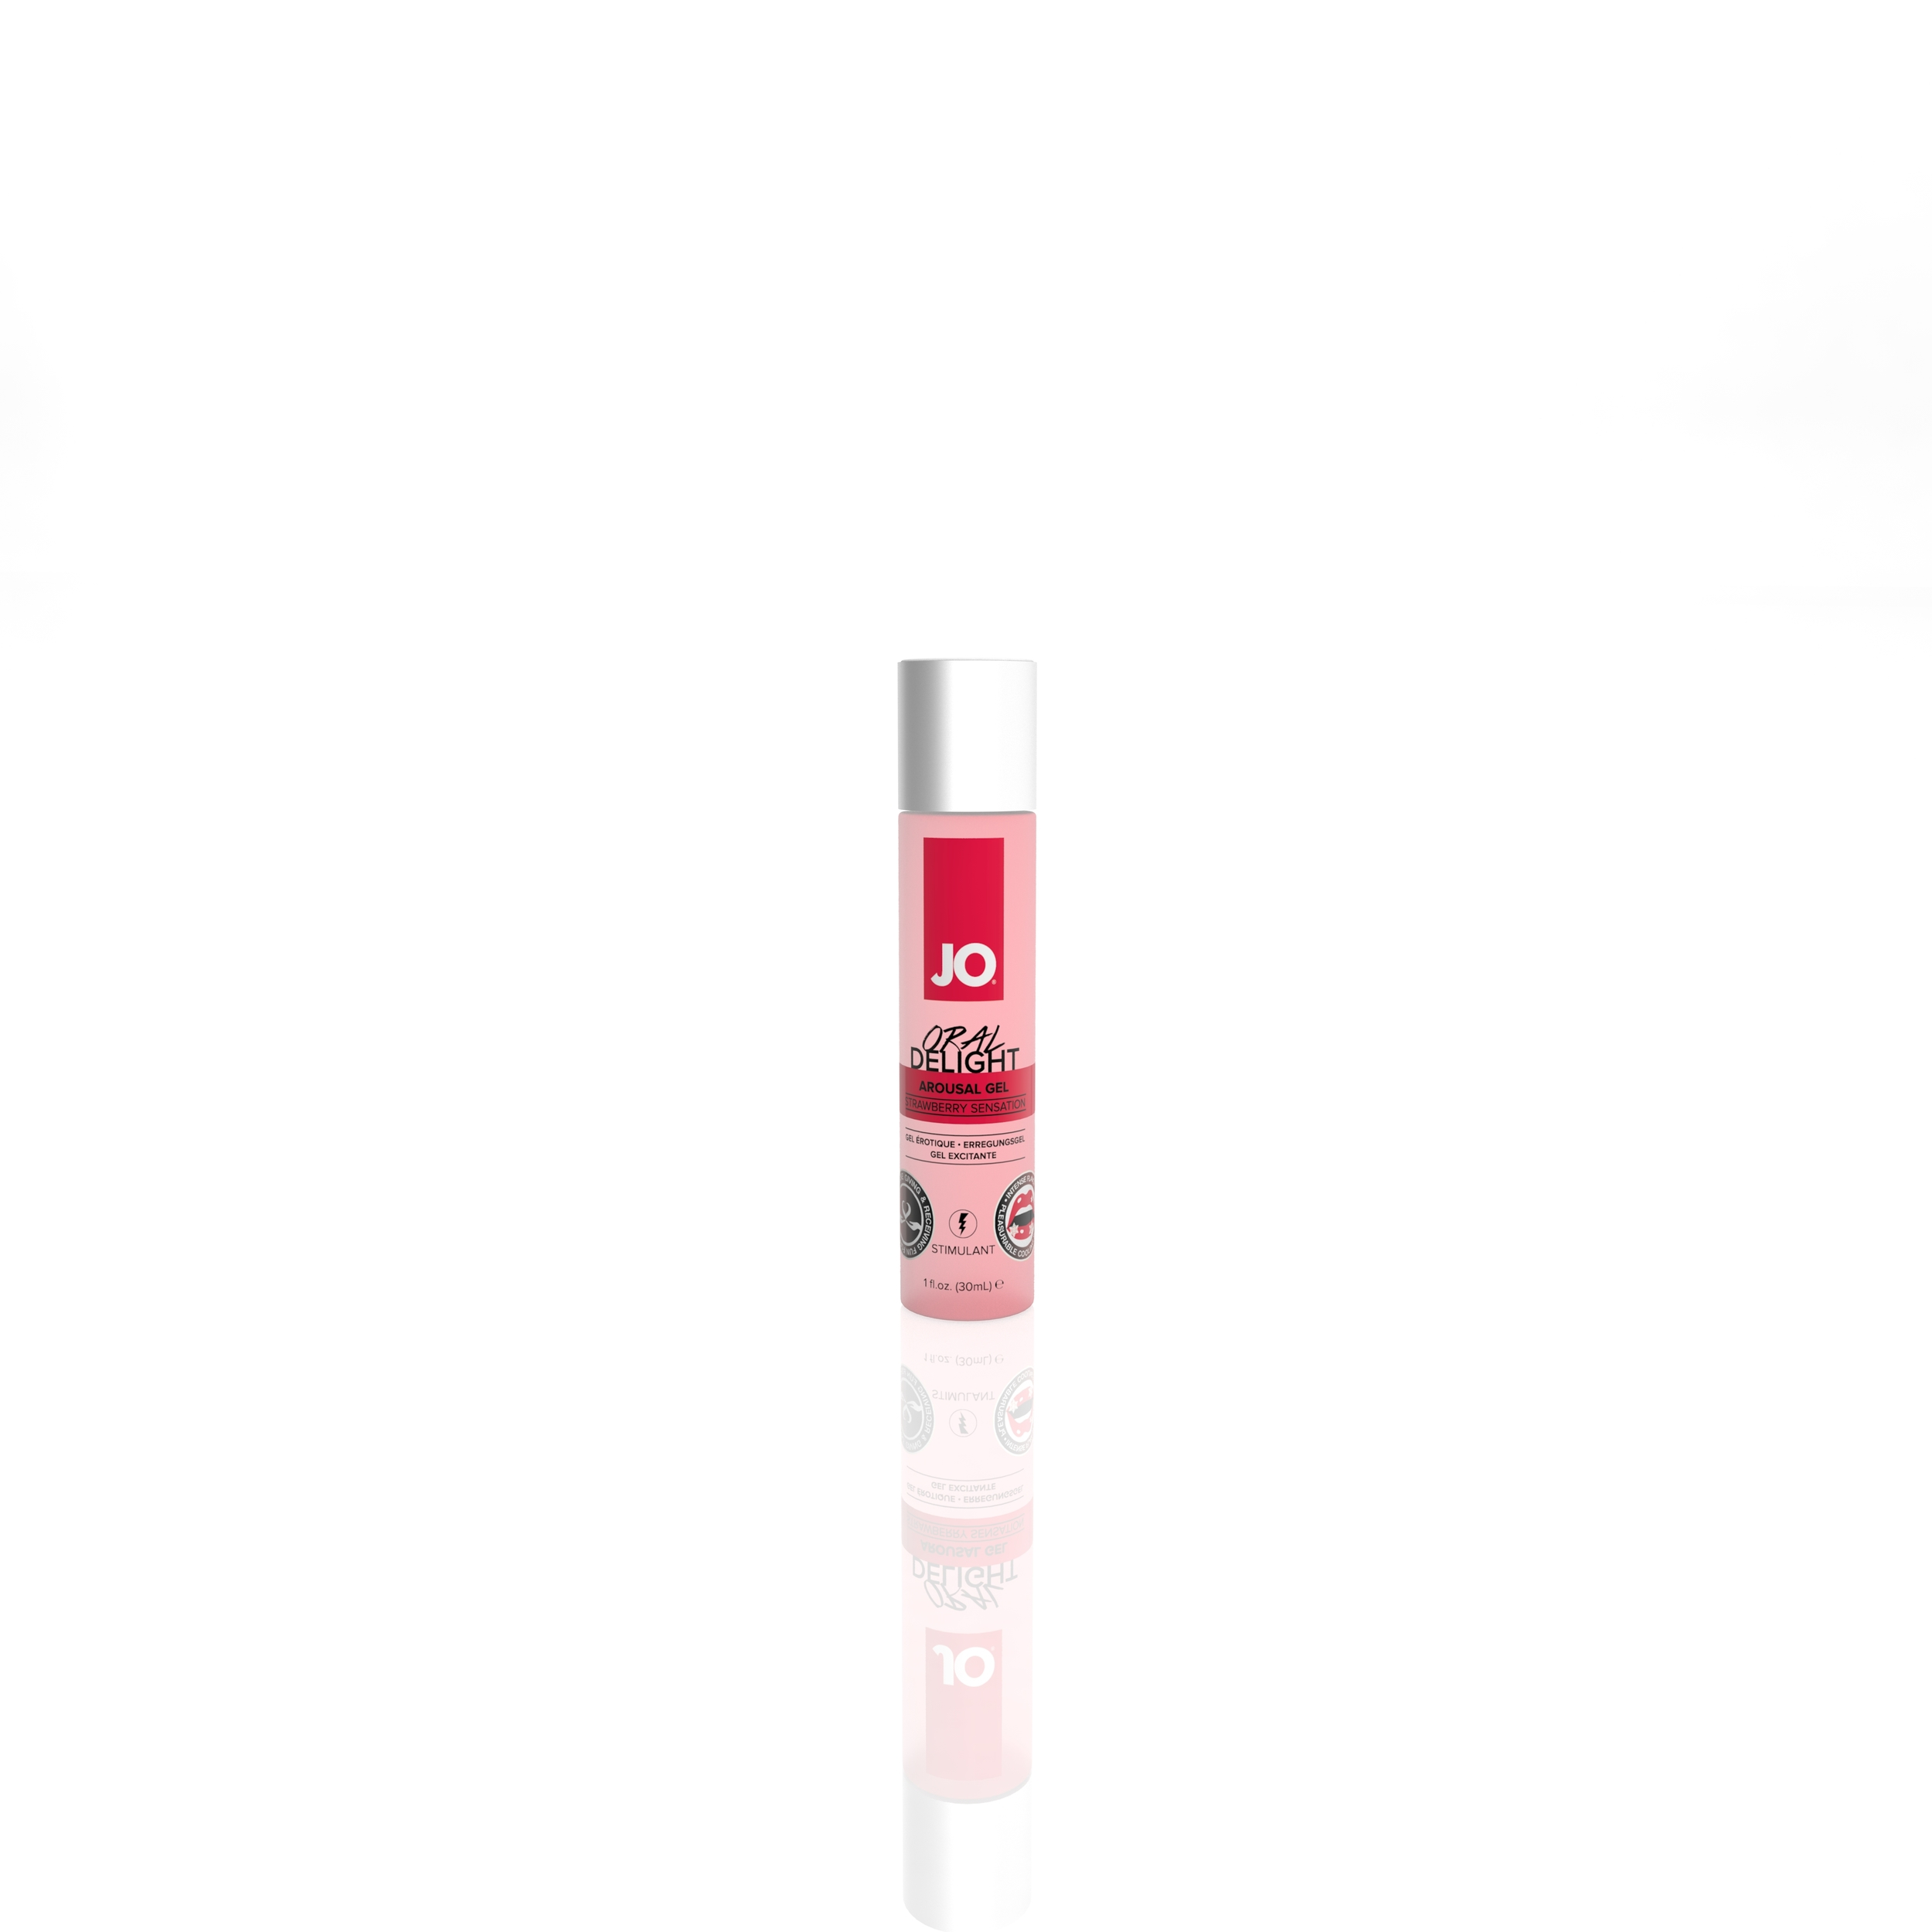 40481 - JO ORAL DELIGHT - STRAWBERRY SENSATION - 1fl.oz 30mL Bottle.jpg